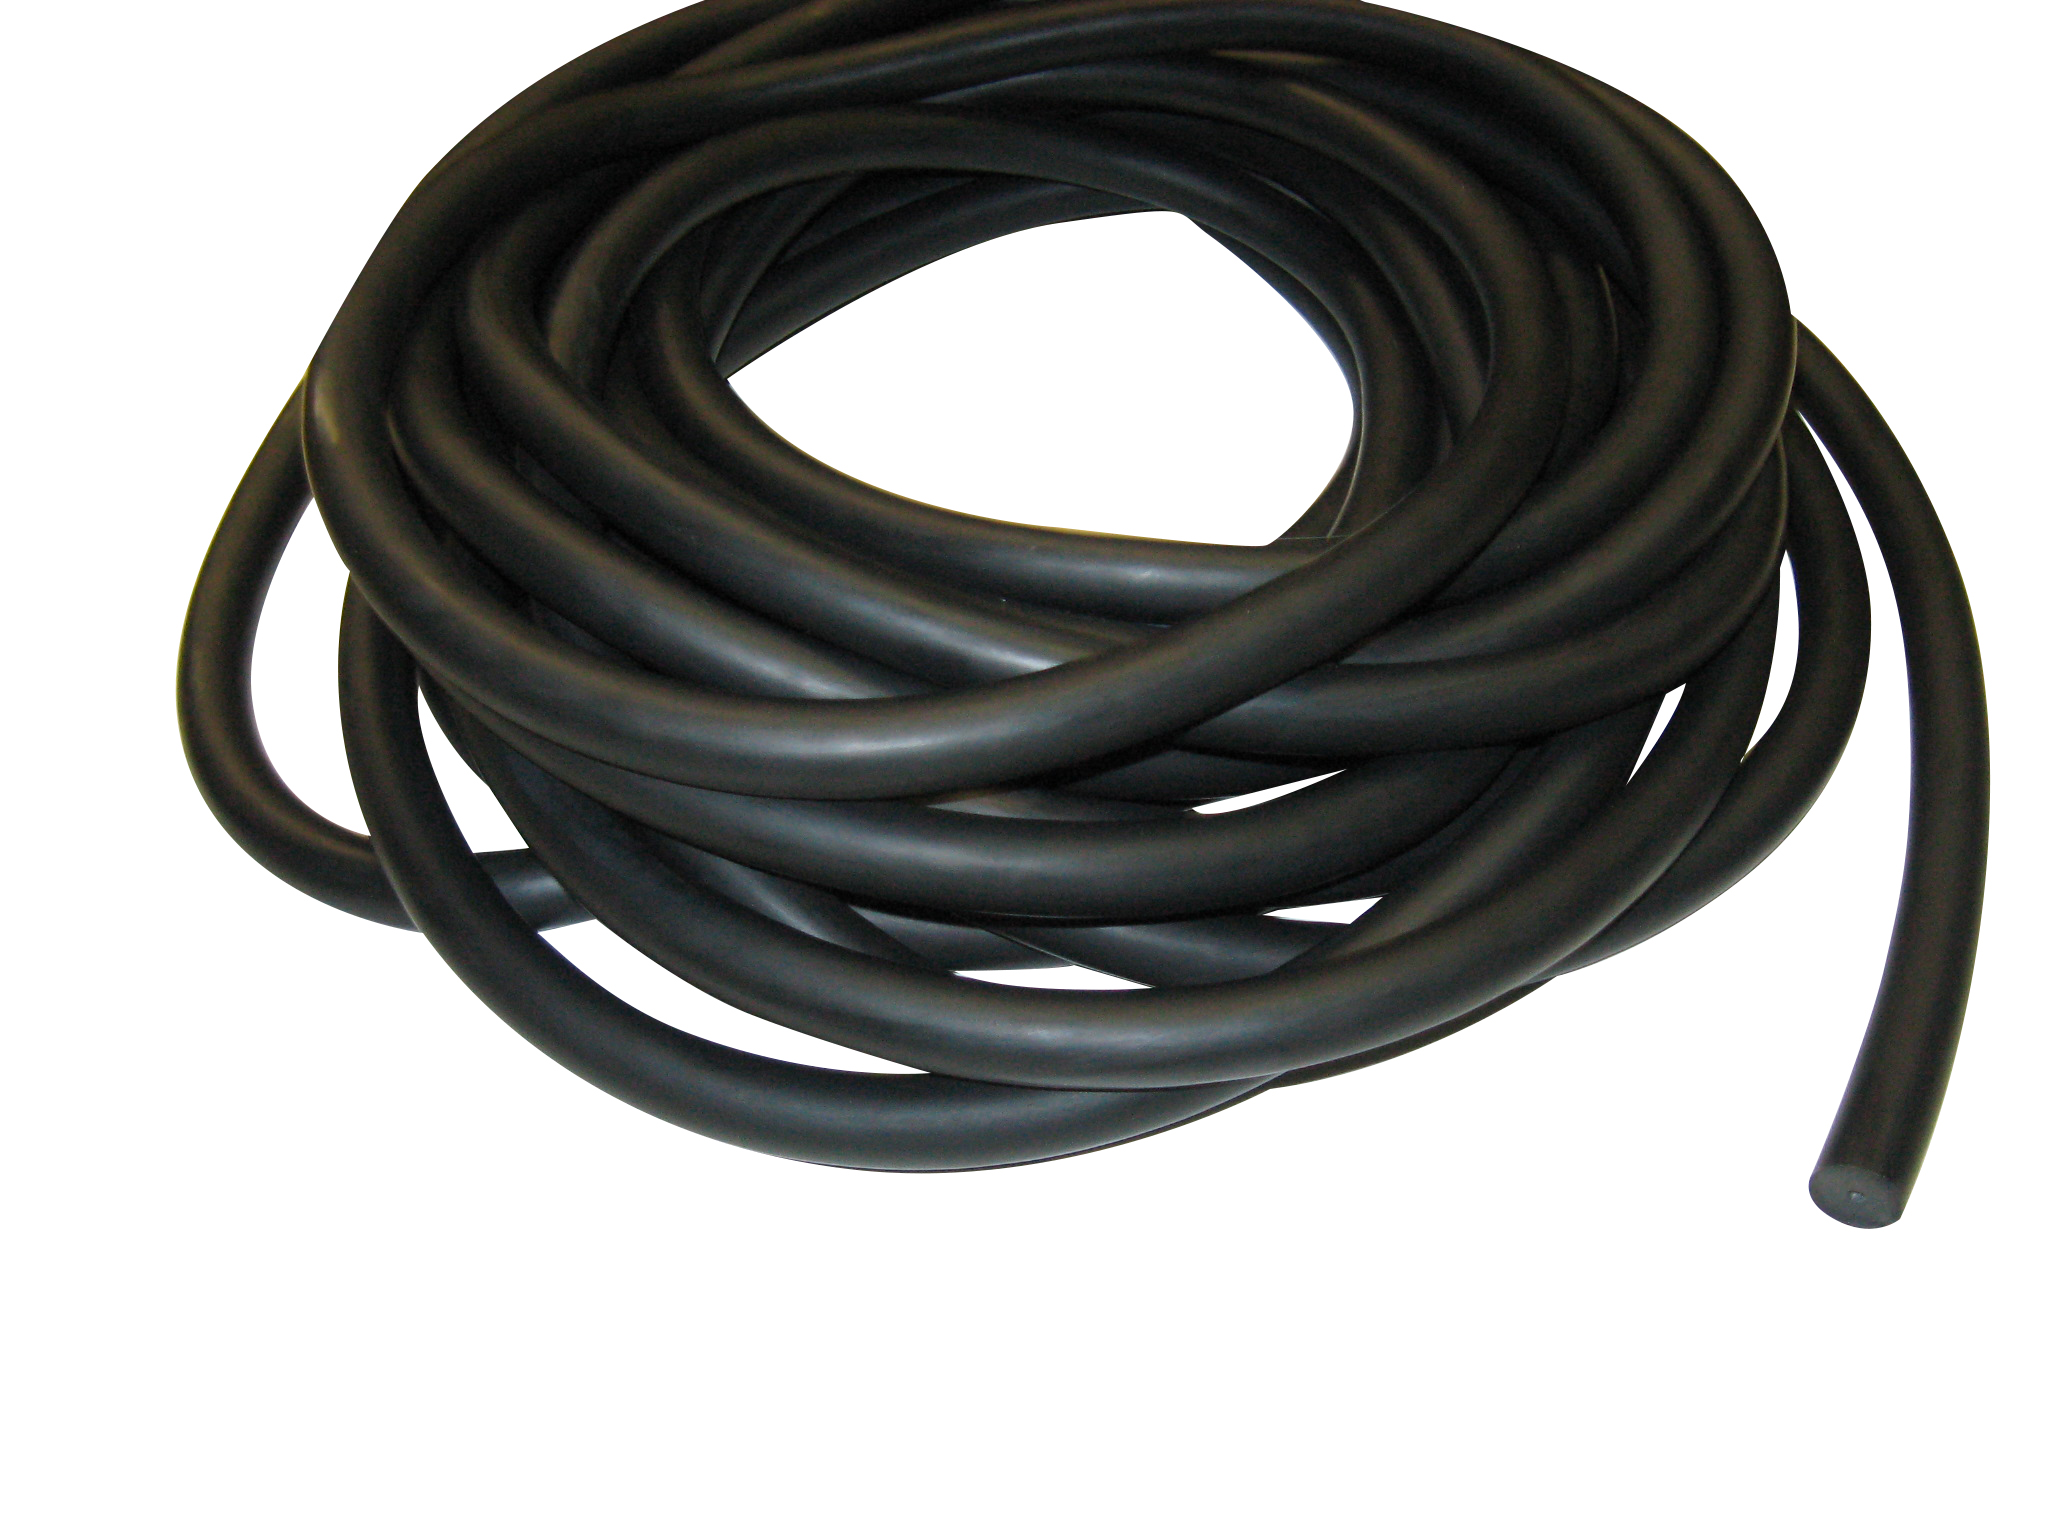 "3353 Bandito Speargun Rubber Tubing, 1/2"" Black"